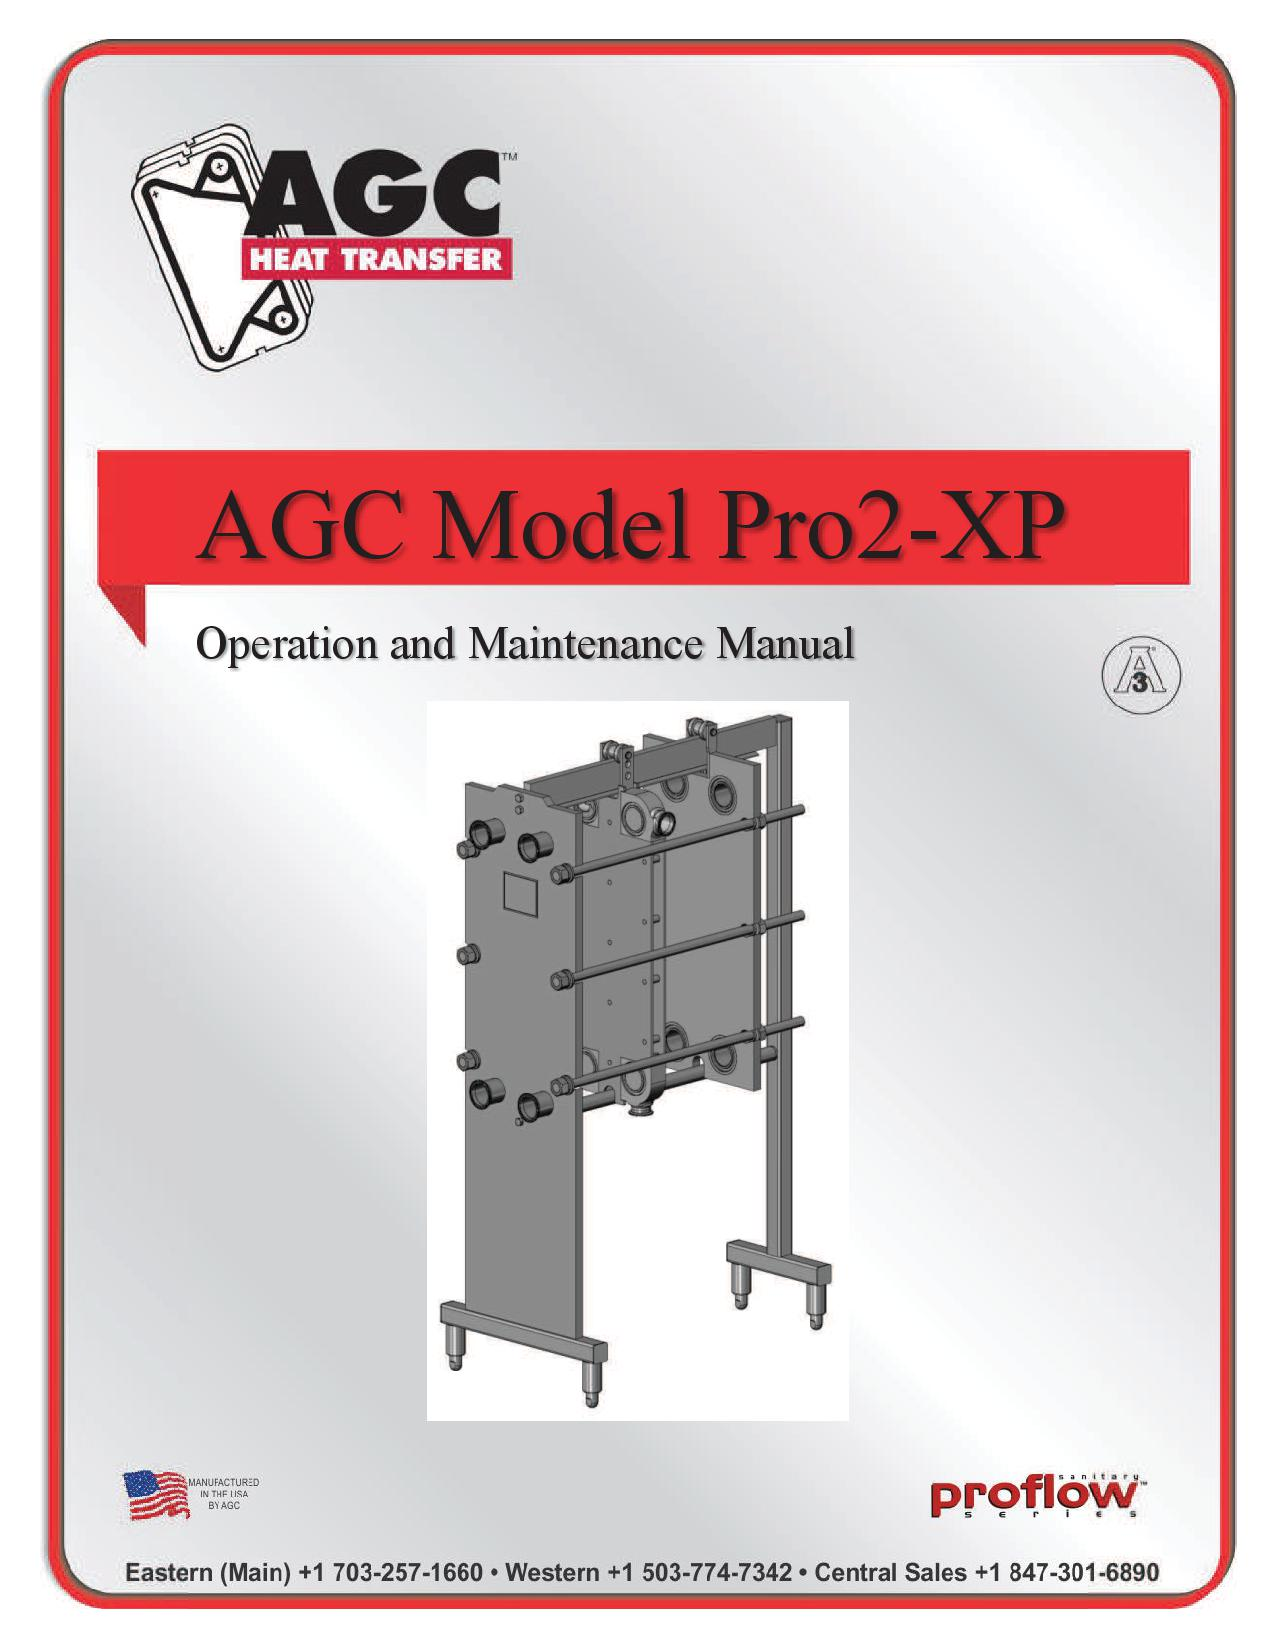 AGC Operating Manual Pro2-XP